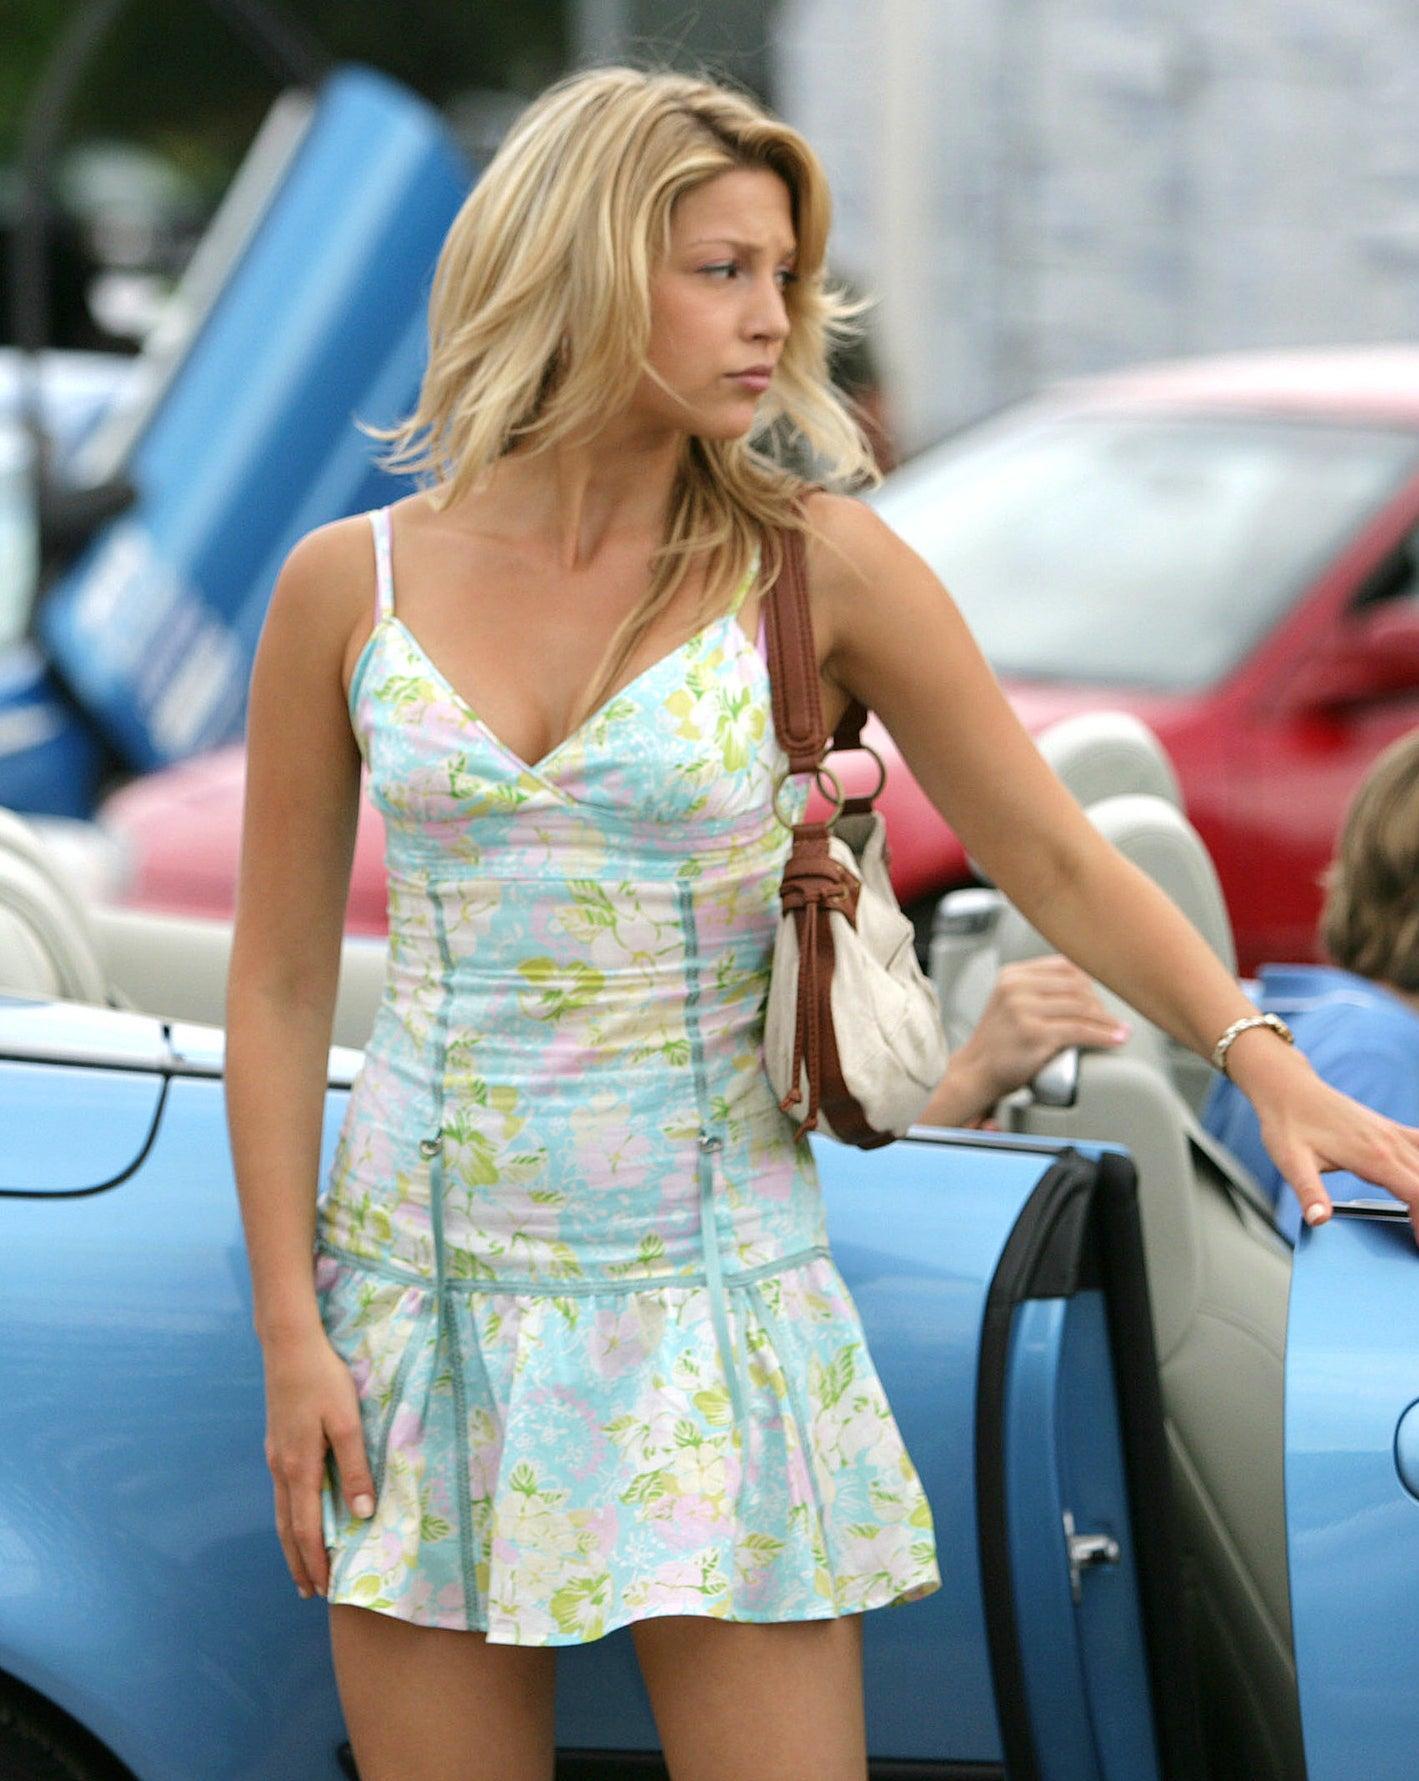 Ruched tight-waist dress with low-waist flare short skirt, a pastel floral pattern, and a triangle bikini-like top with spaghetti straps